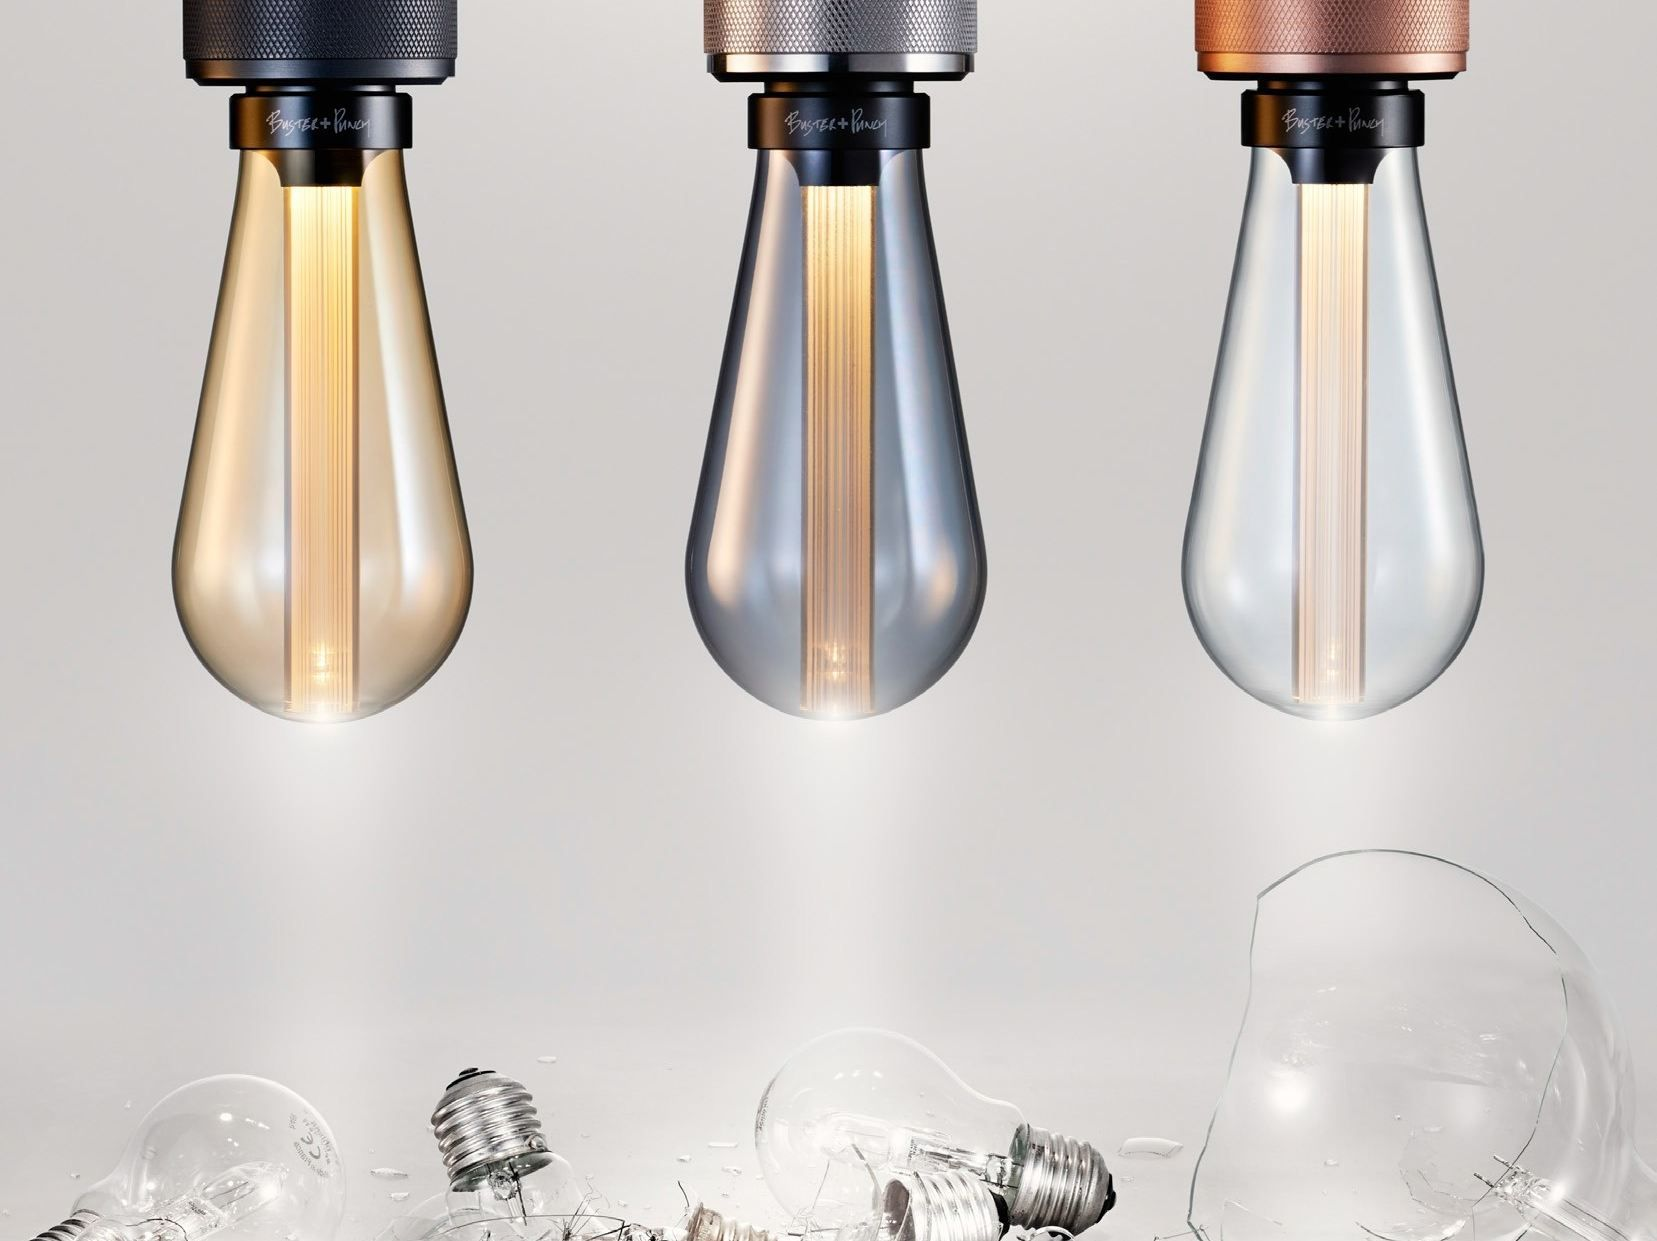 LED light bulb with dimmer LED BUSTER BULB by Buster Punch bulb